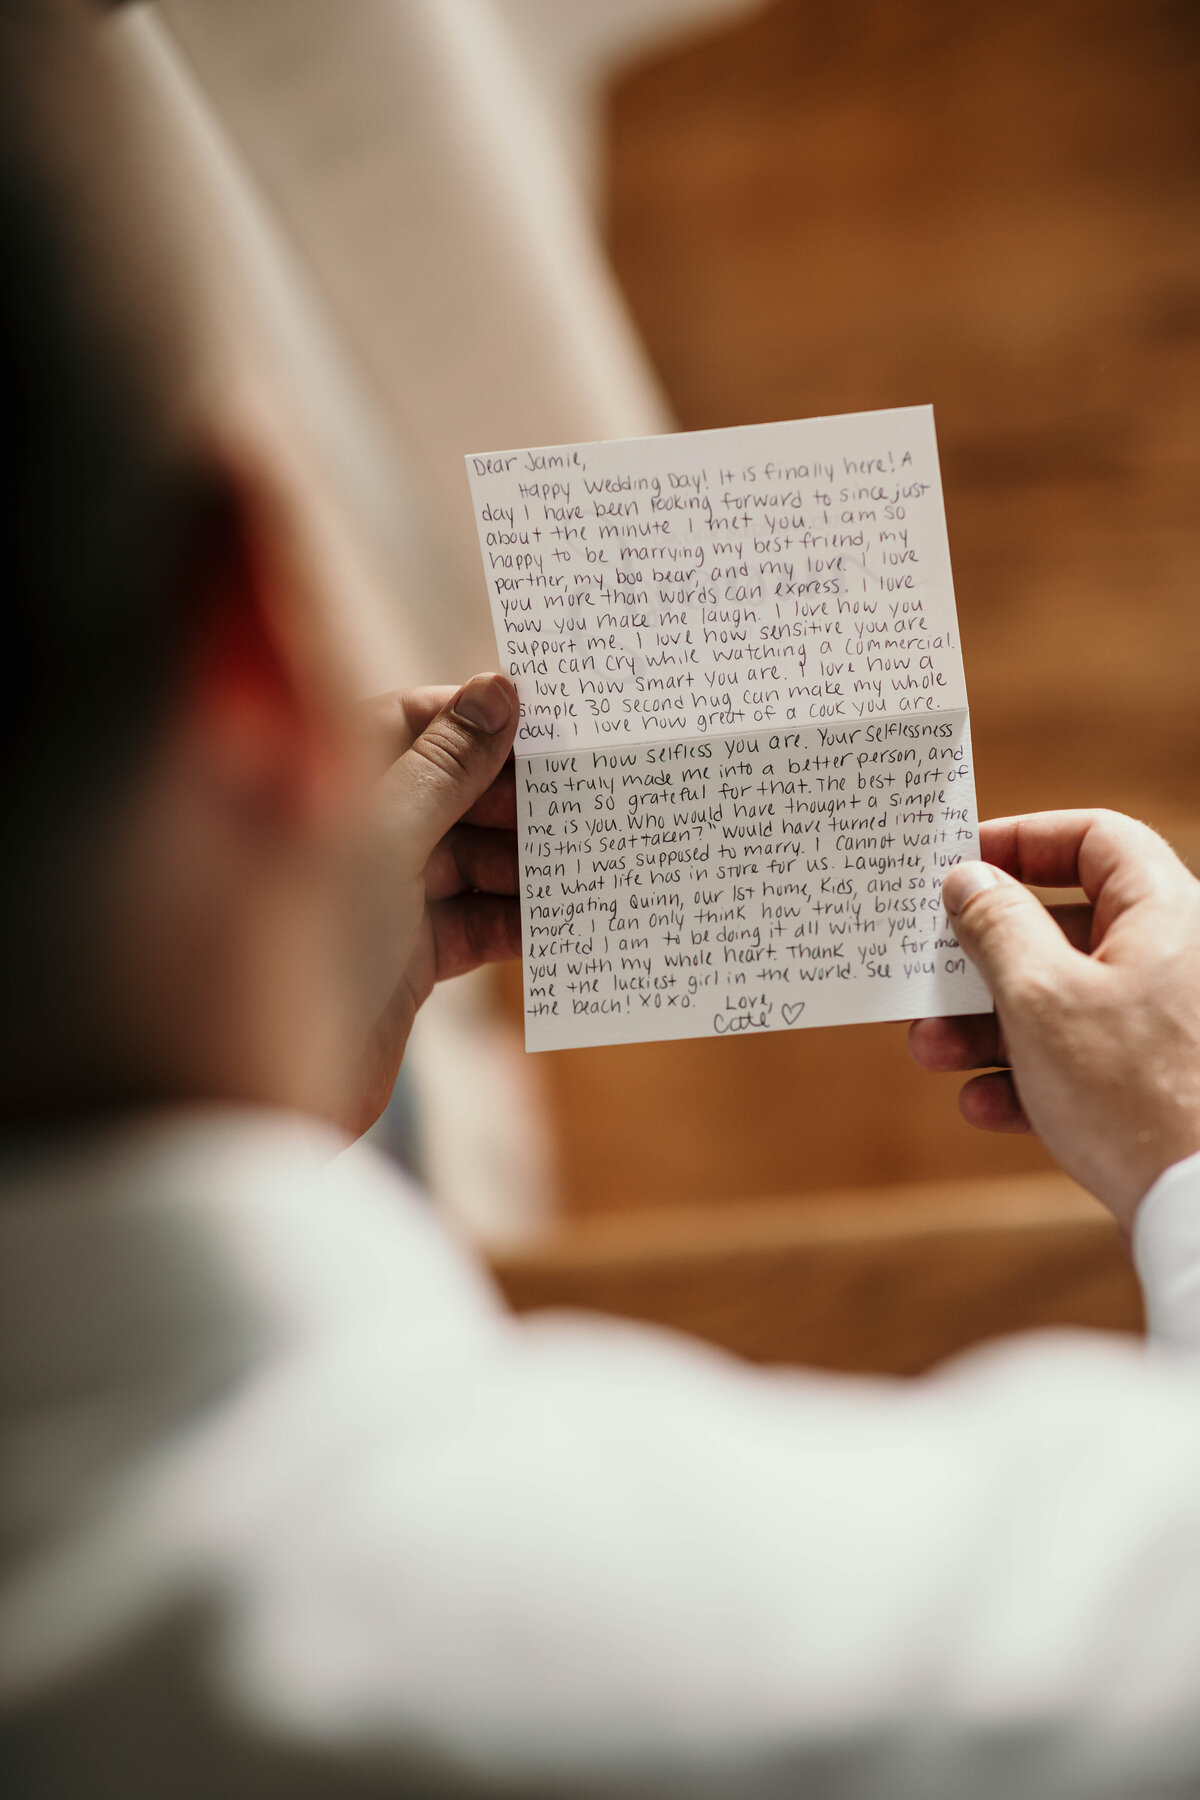 An image from behind of the groom reading the loving handwritten message from the bride before the wedding begins by Garry & Stacy Photography Co - Sarasota FL wedding photographers